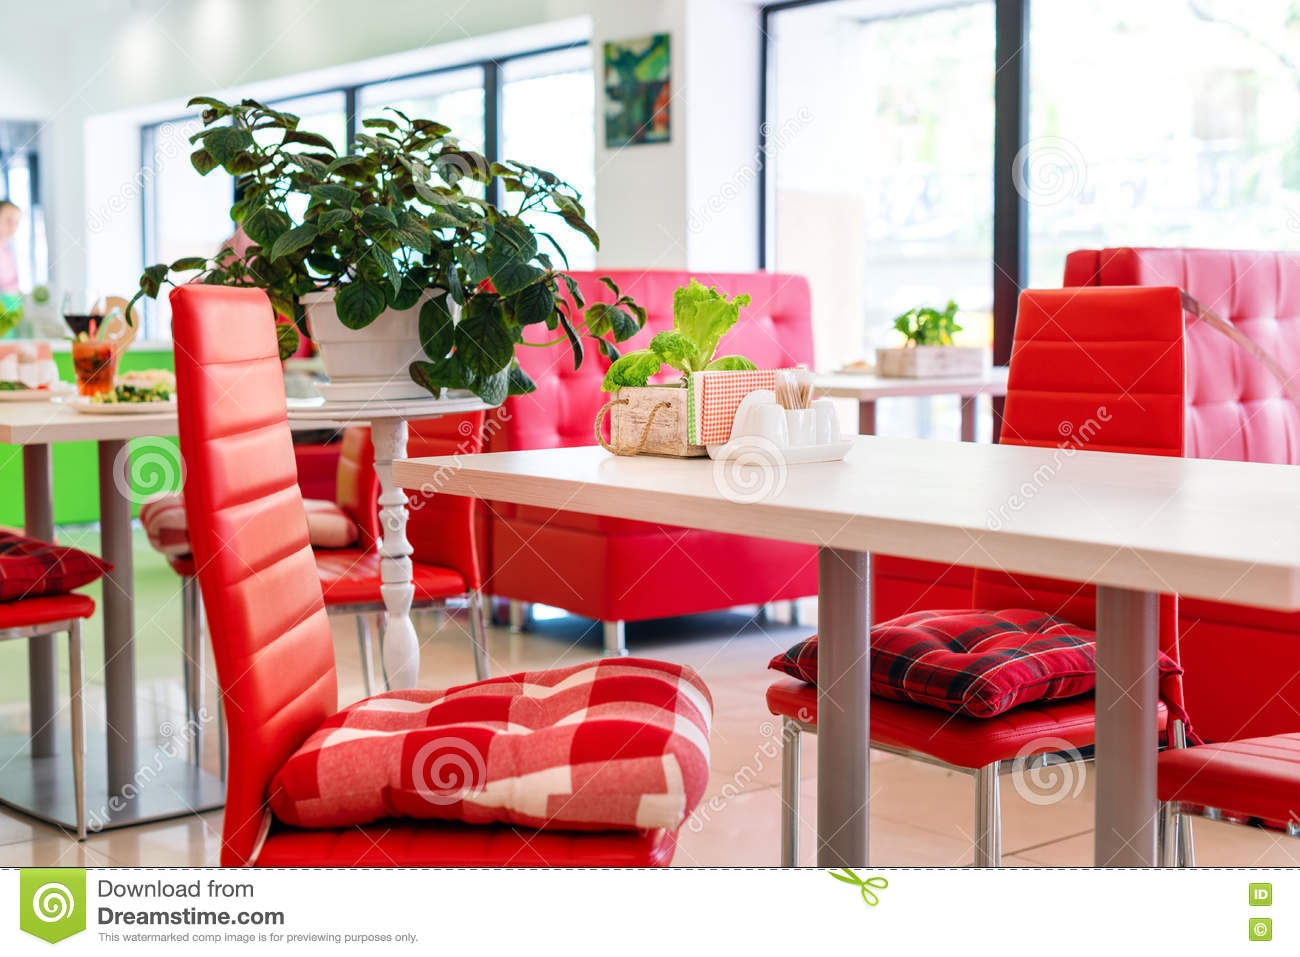 Modern design restaurant interior in white and red colors